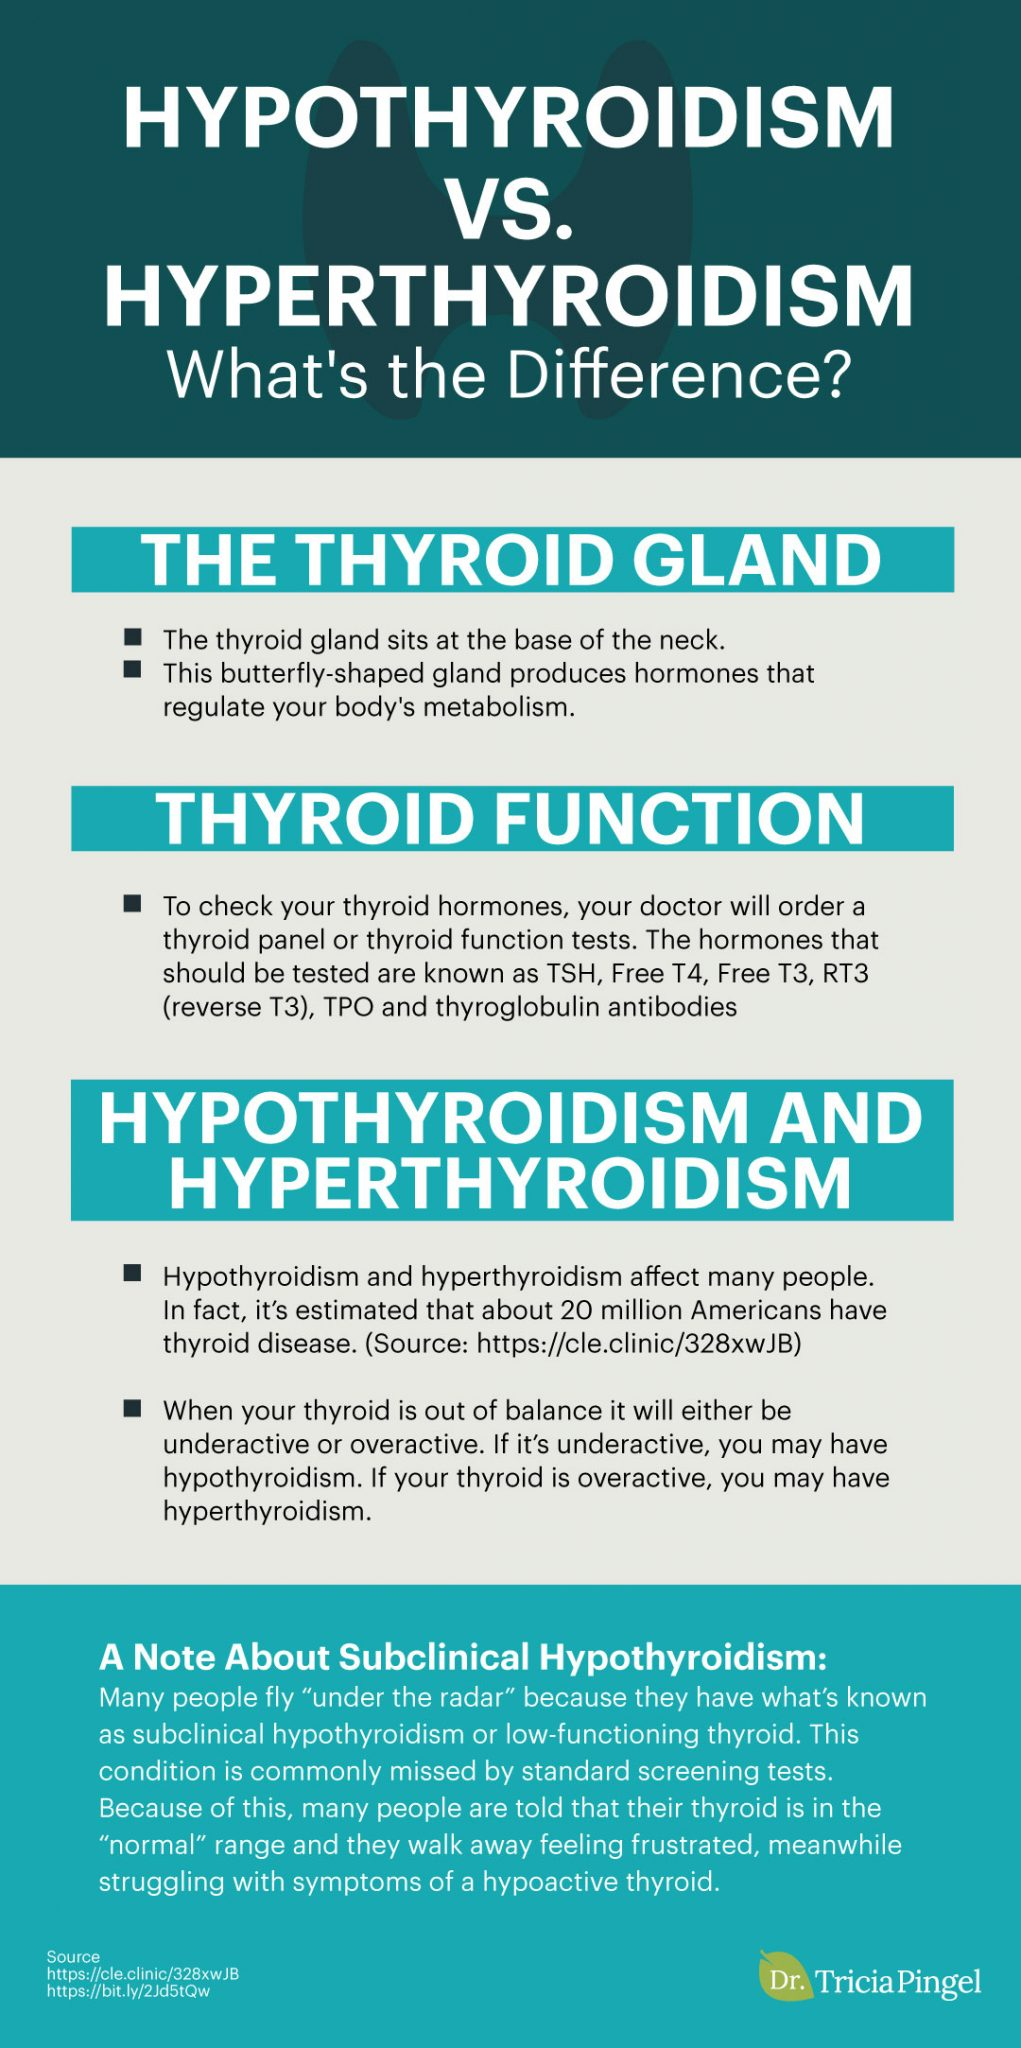 The thyroid gland - Dr. Pingel